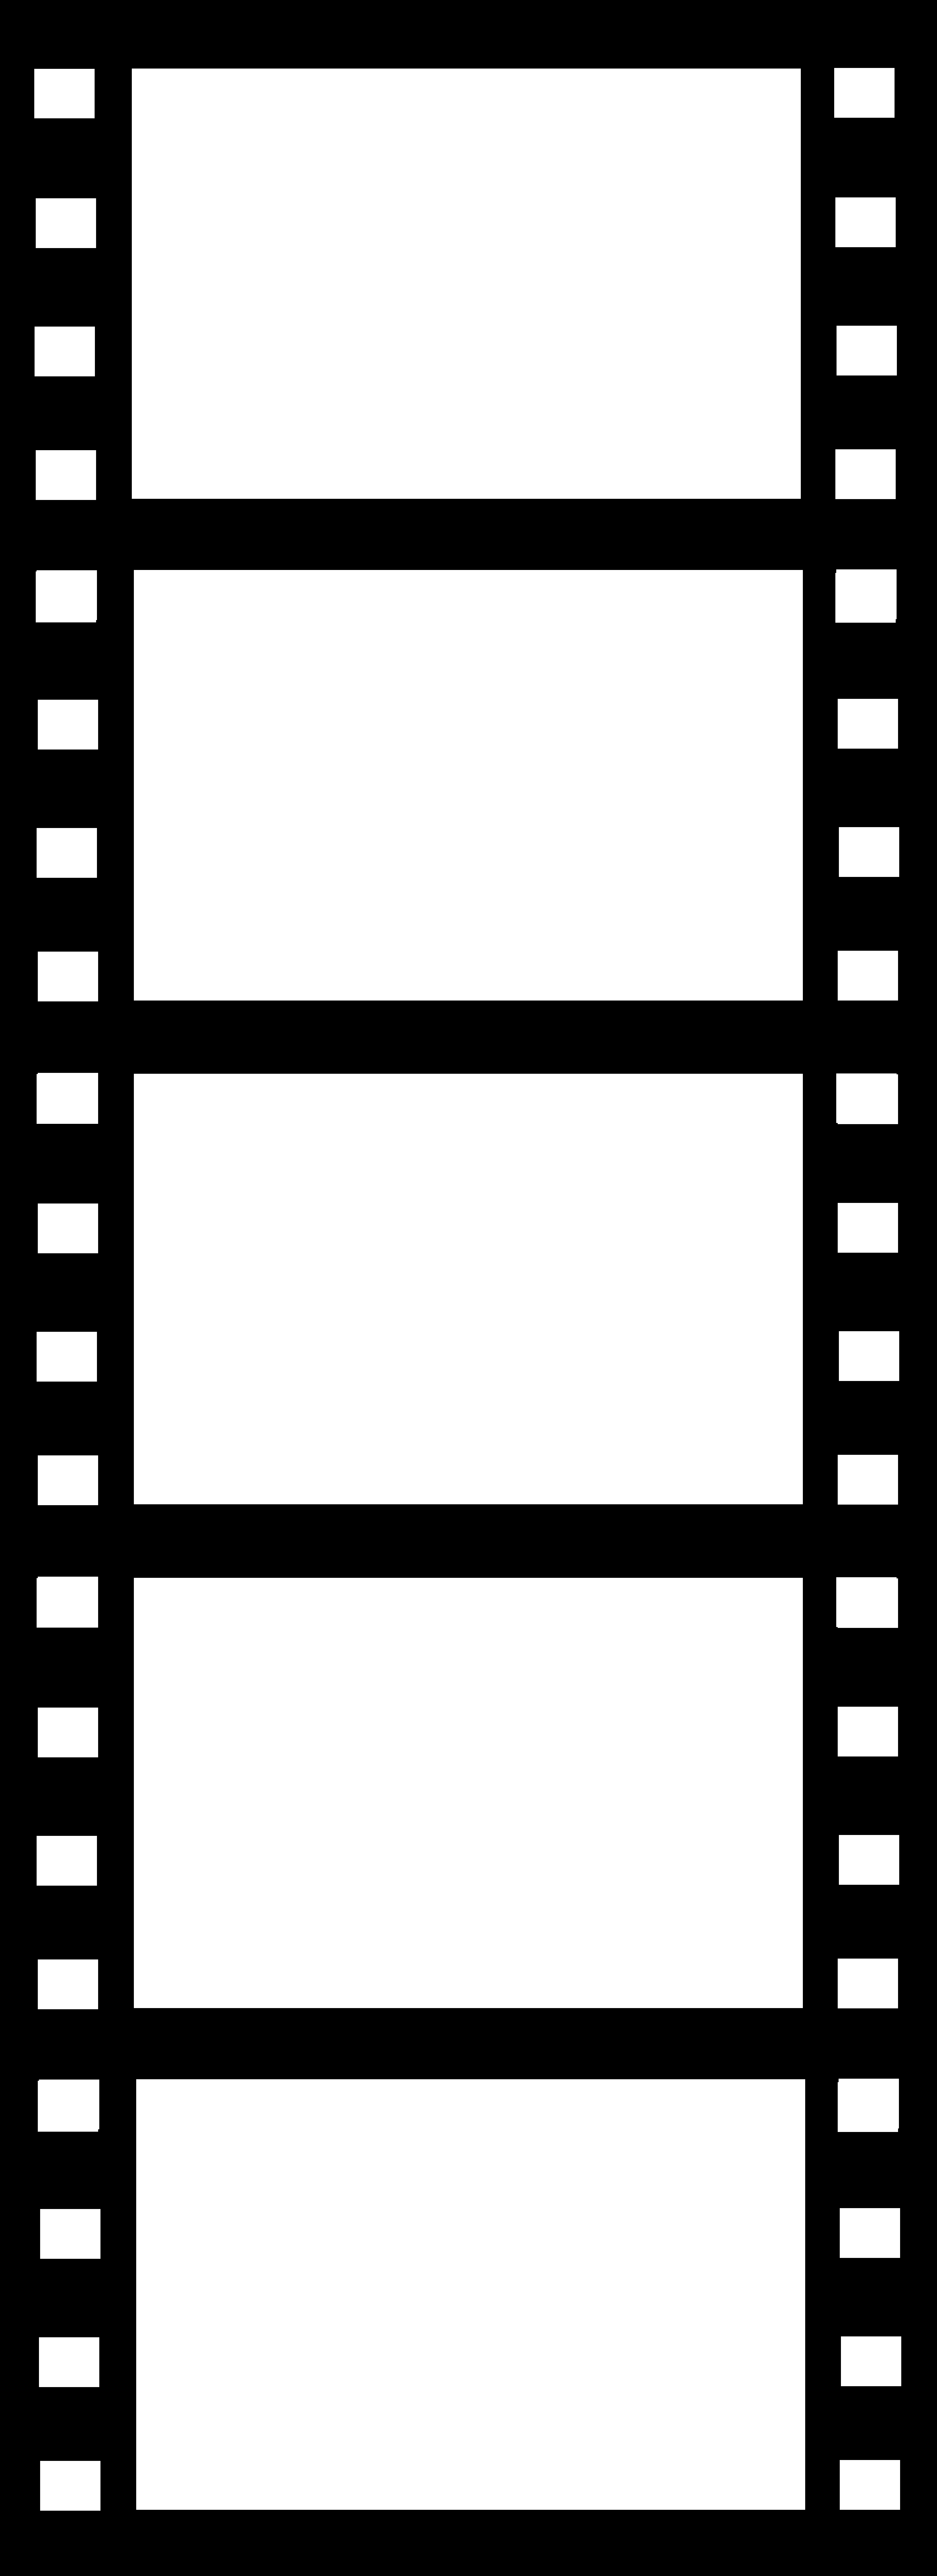 Movie roll clipart clipart download Movie Film Clip Art | Clipart Panda - Free Clipart Images clipart download